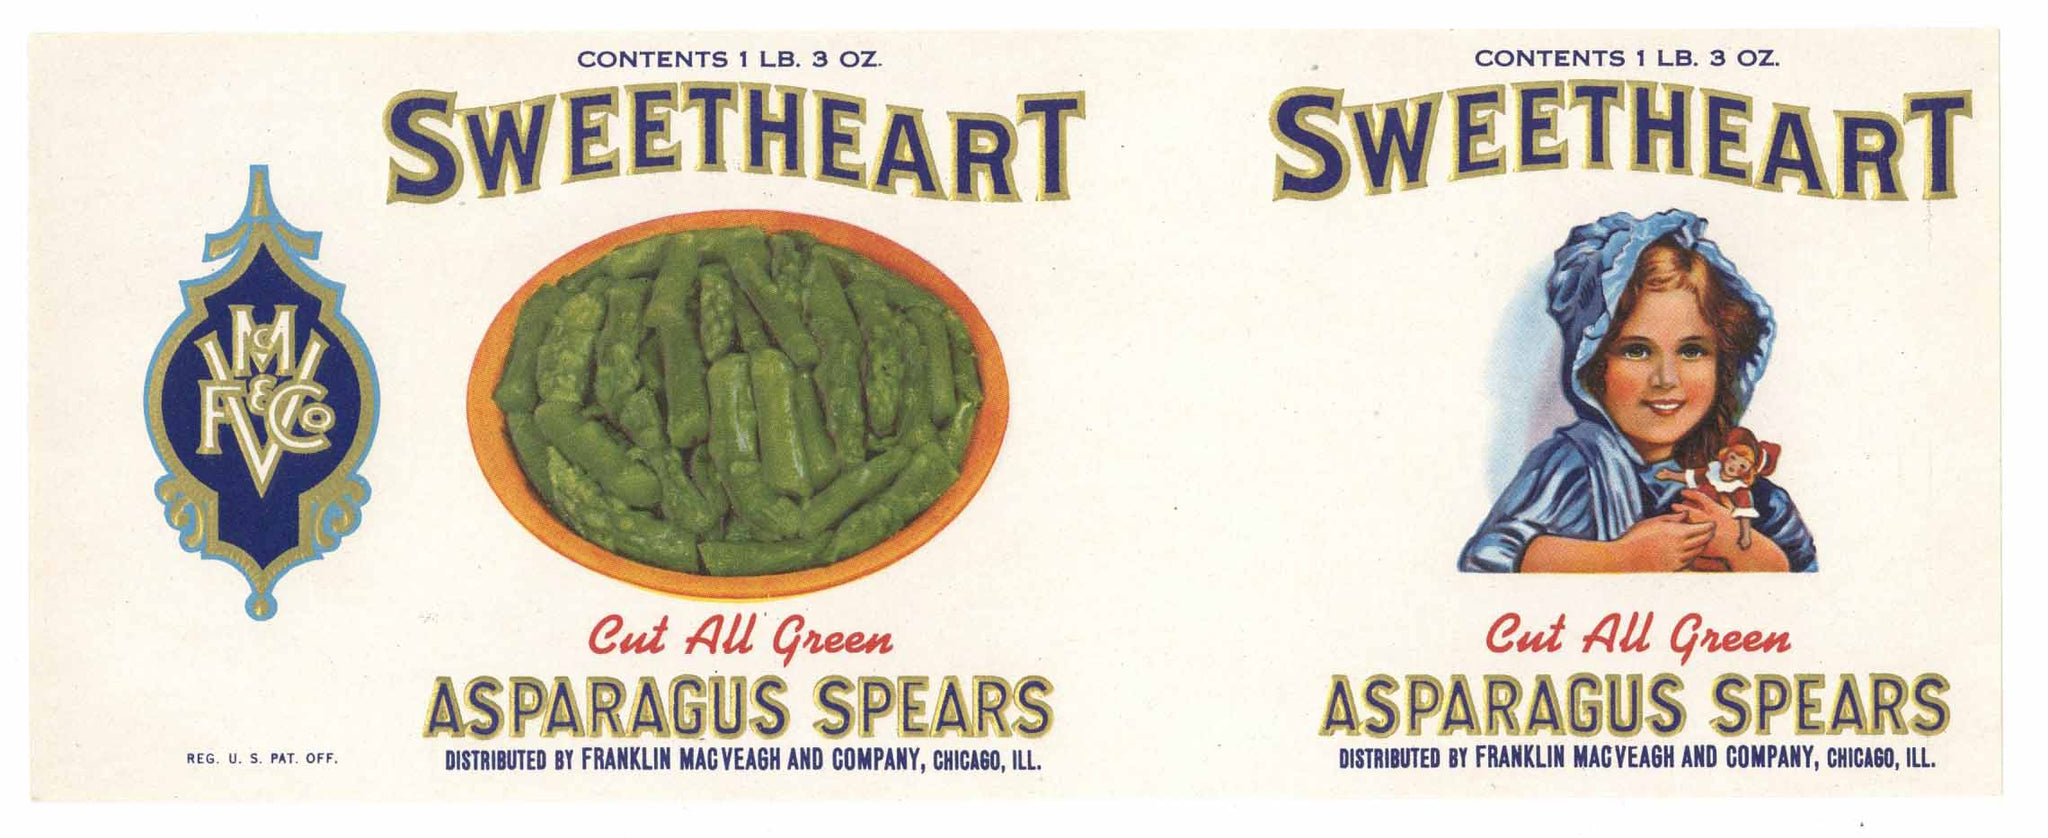 Sweetheart Brand Vintage Asparagus Can Label